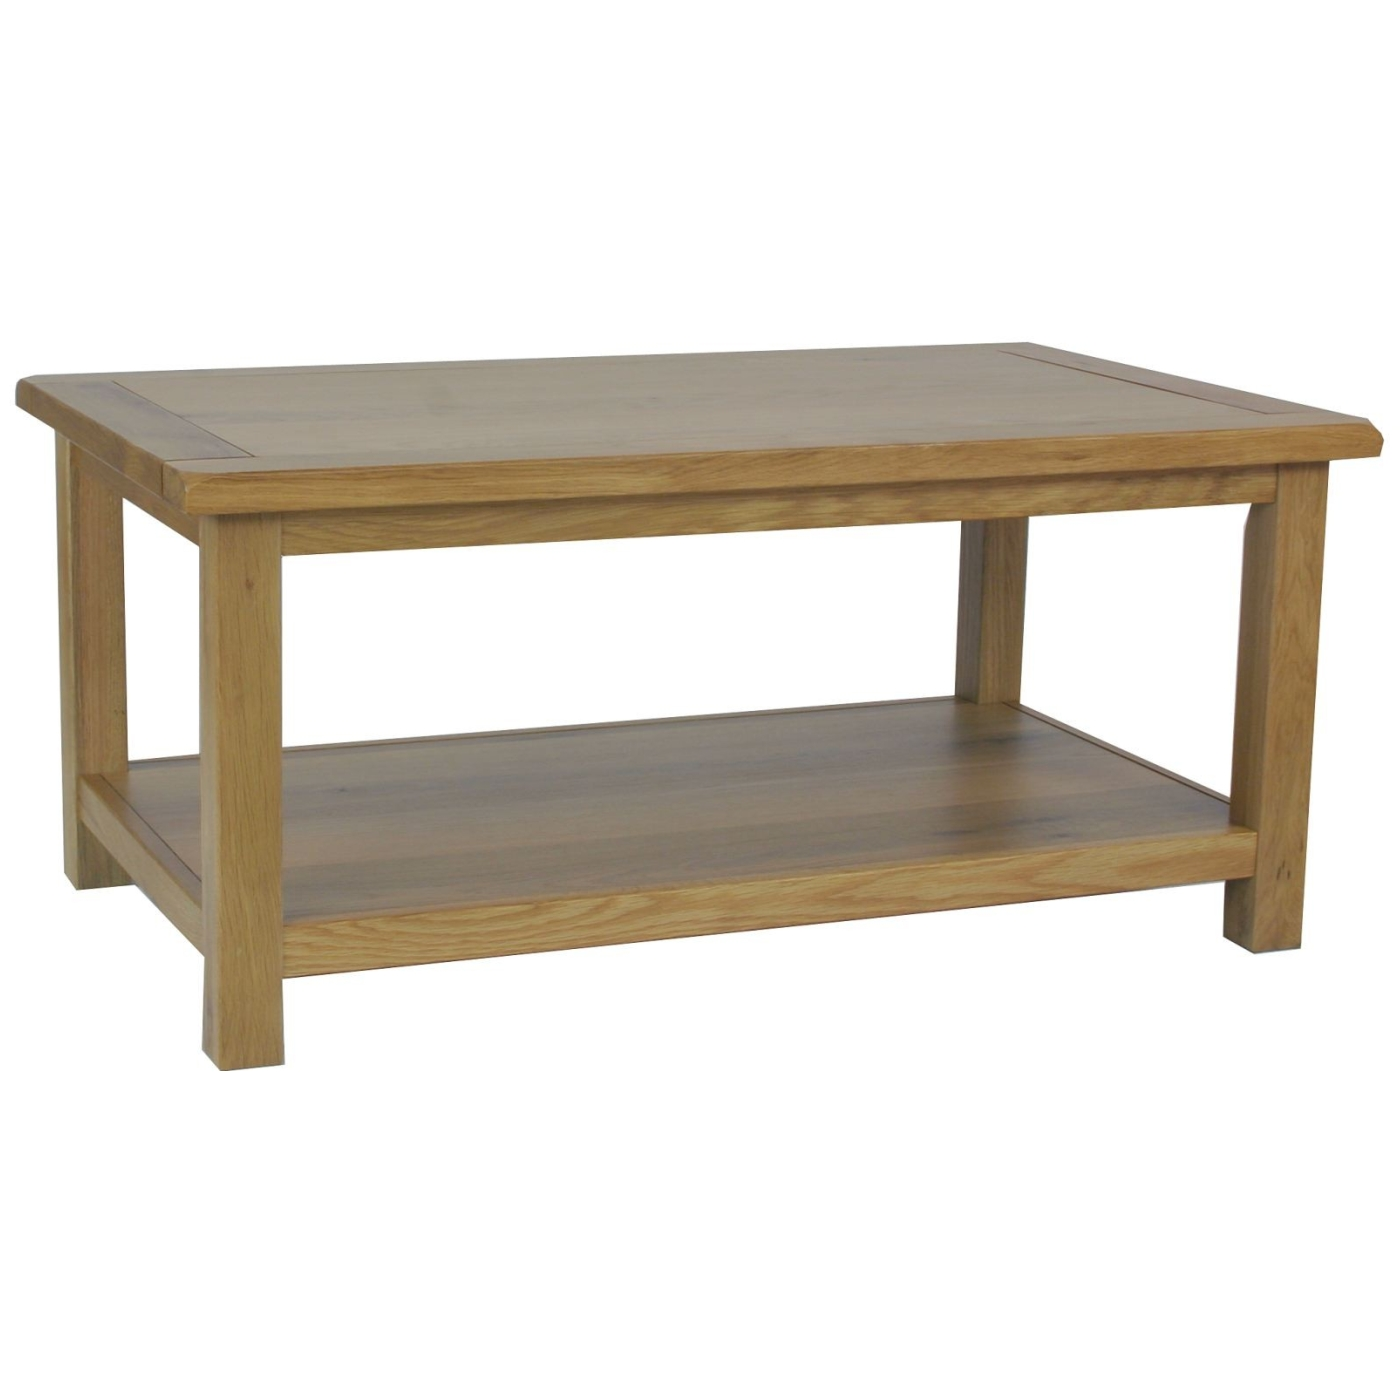 Wonderful Solid Oak Living Room Tables 1400 x 1400 · 295 kB · jpeg